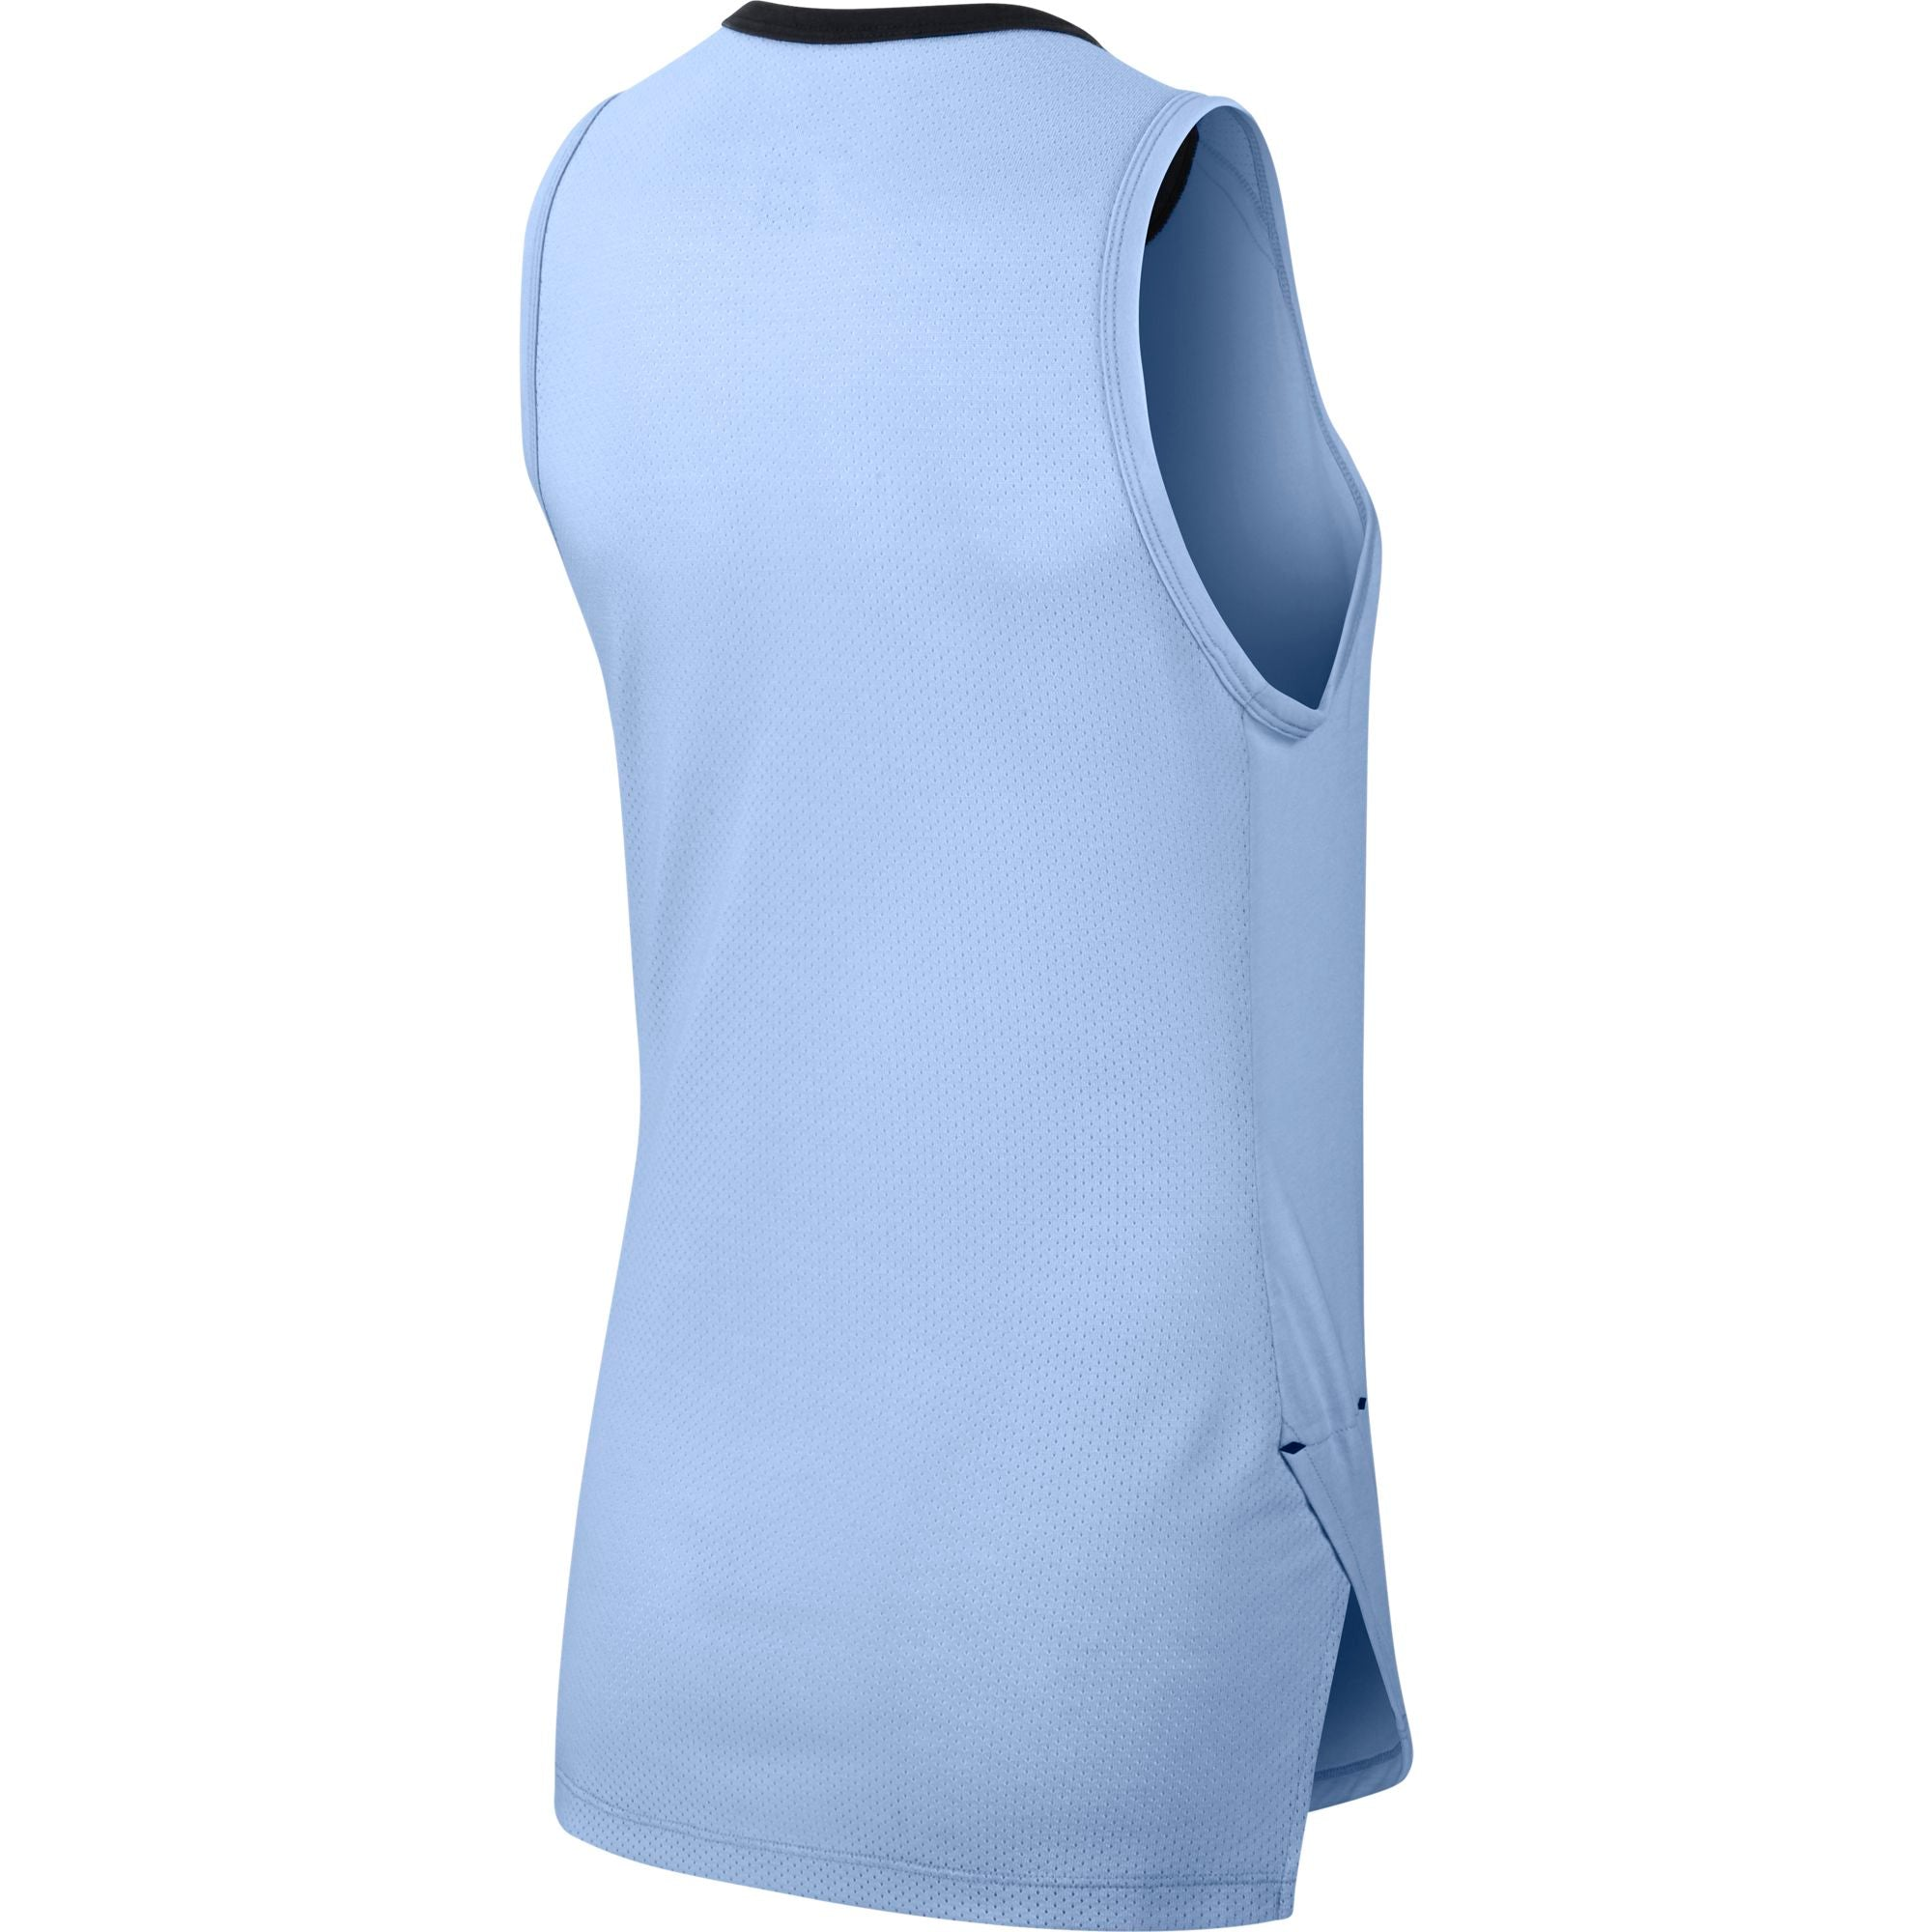 Nike Womens Basketball Breathe Elite Top - Royal Tint/Black